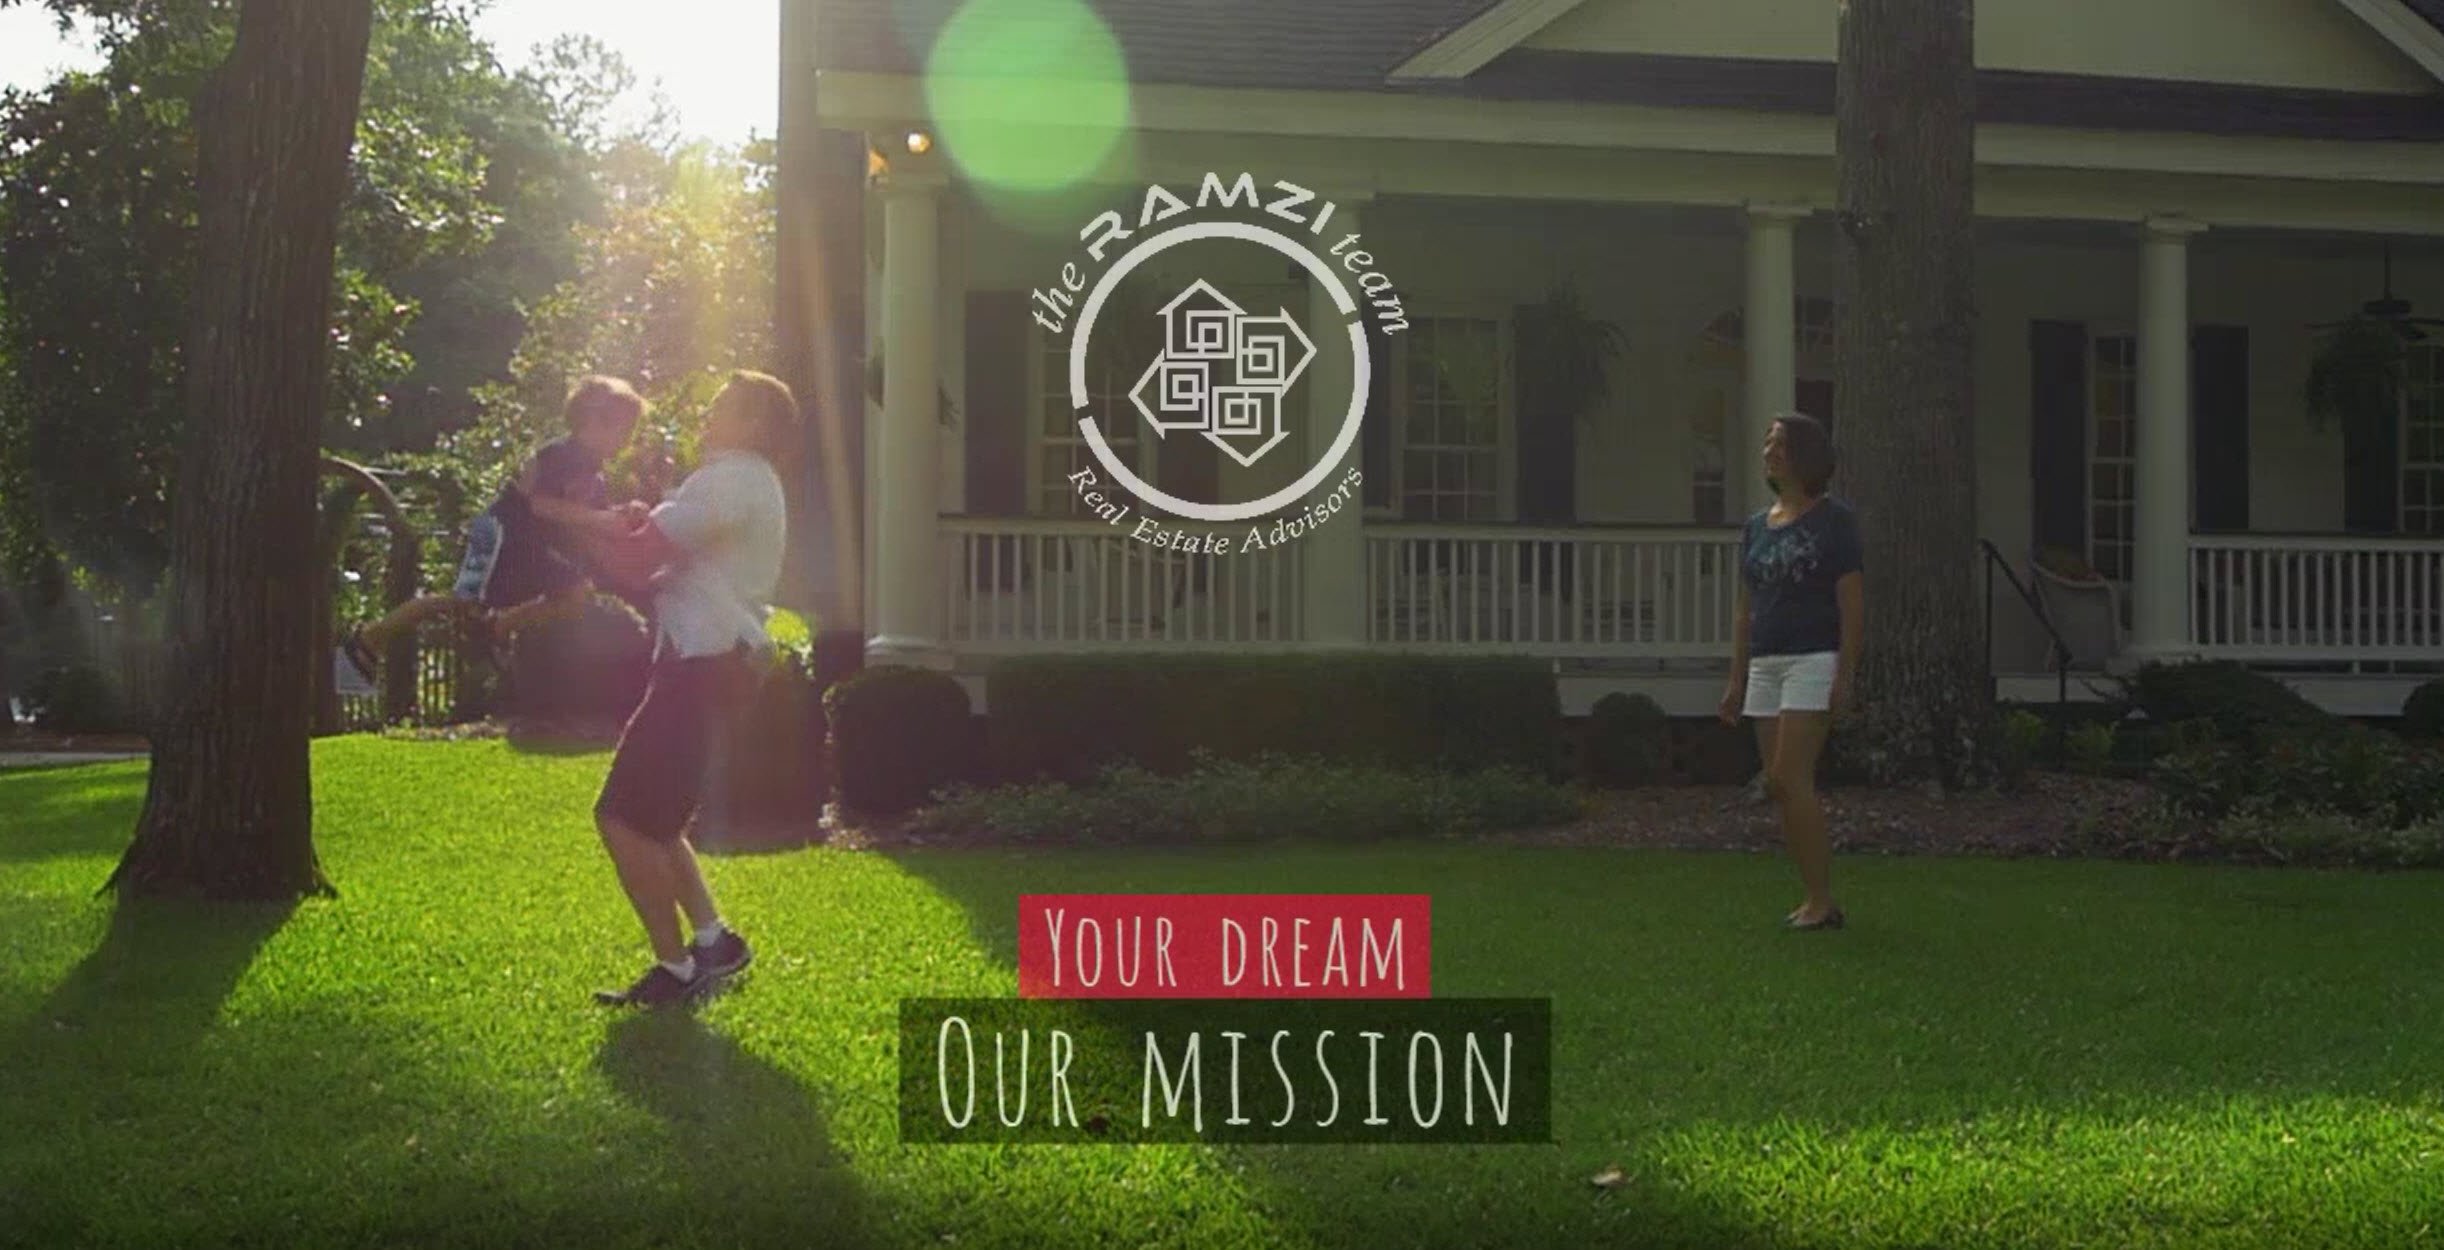 Your Dream Our Mission